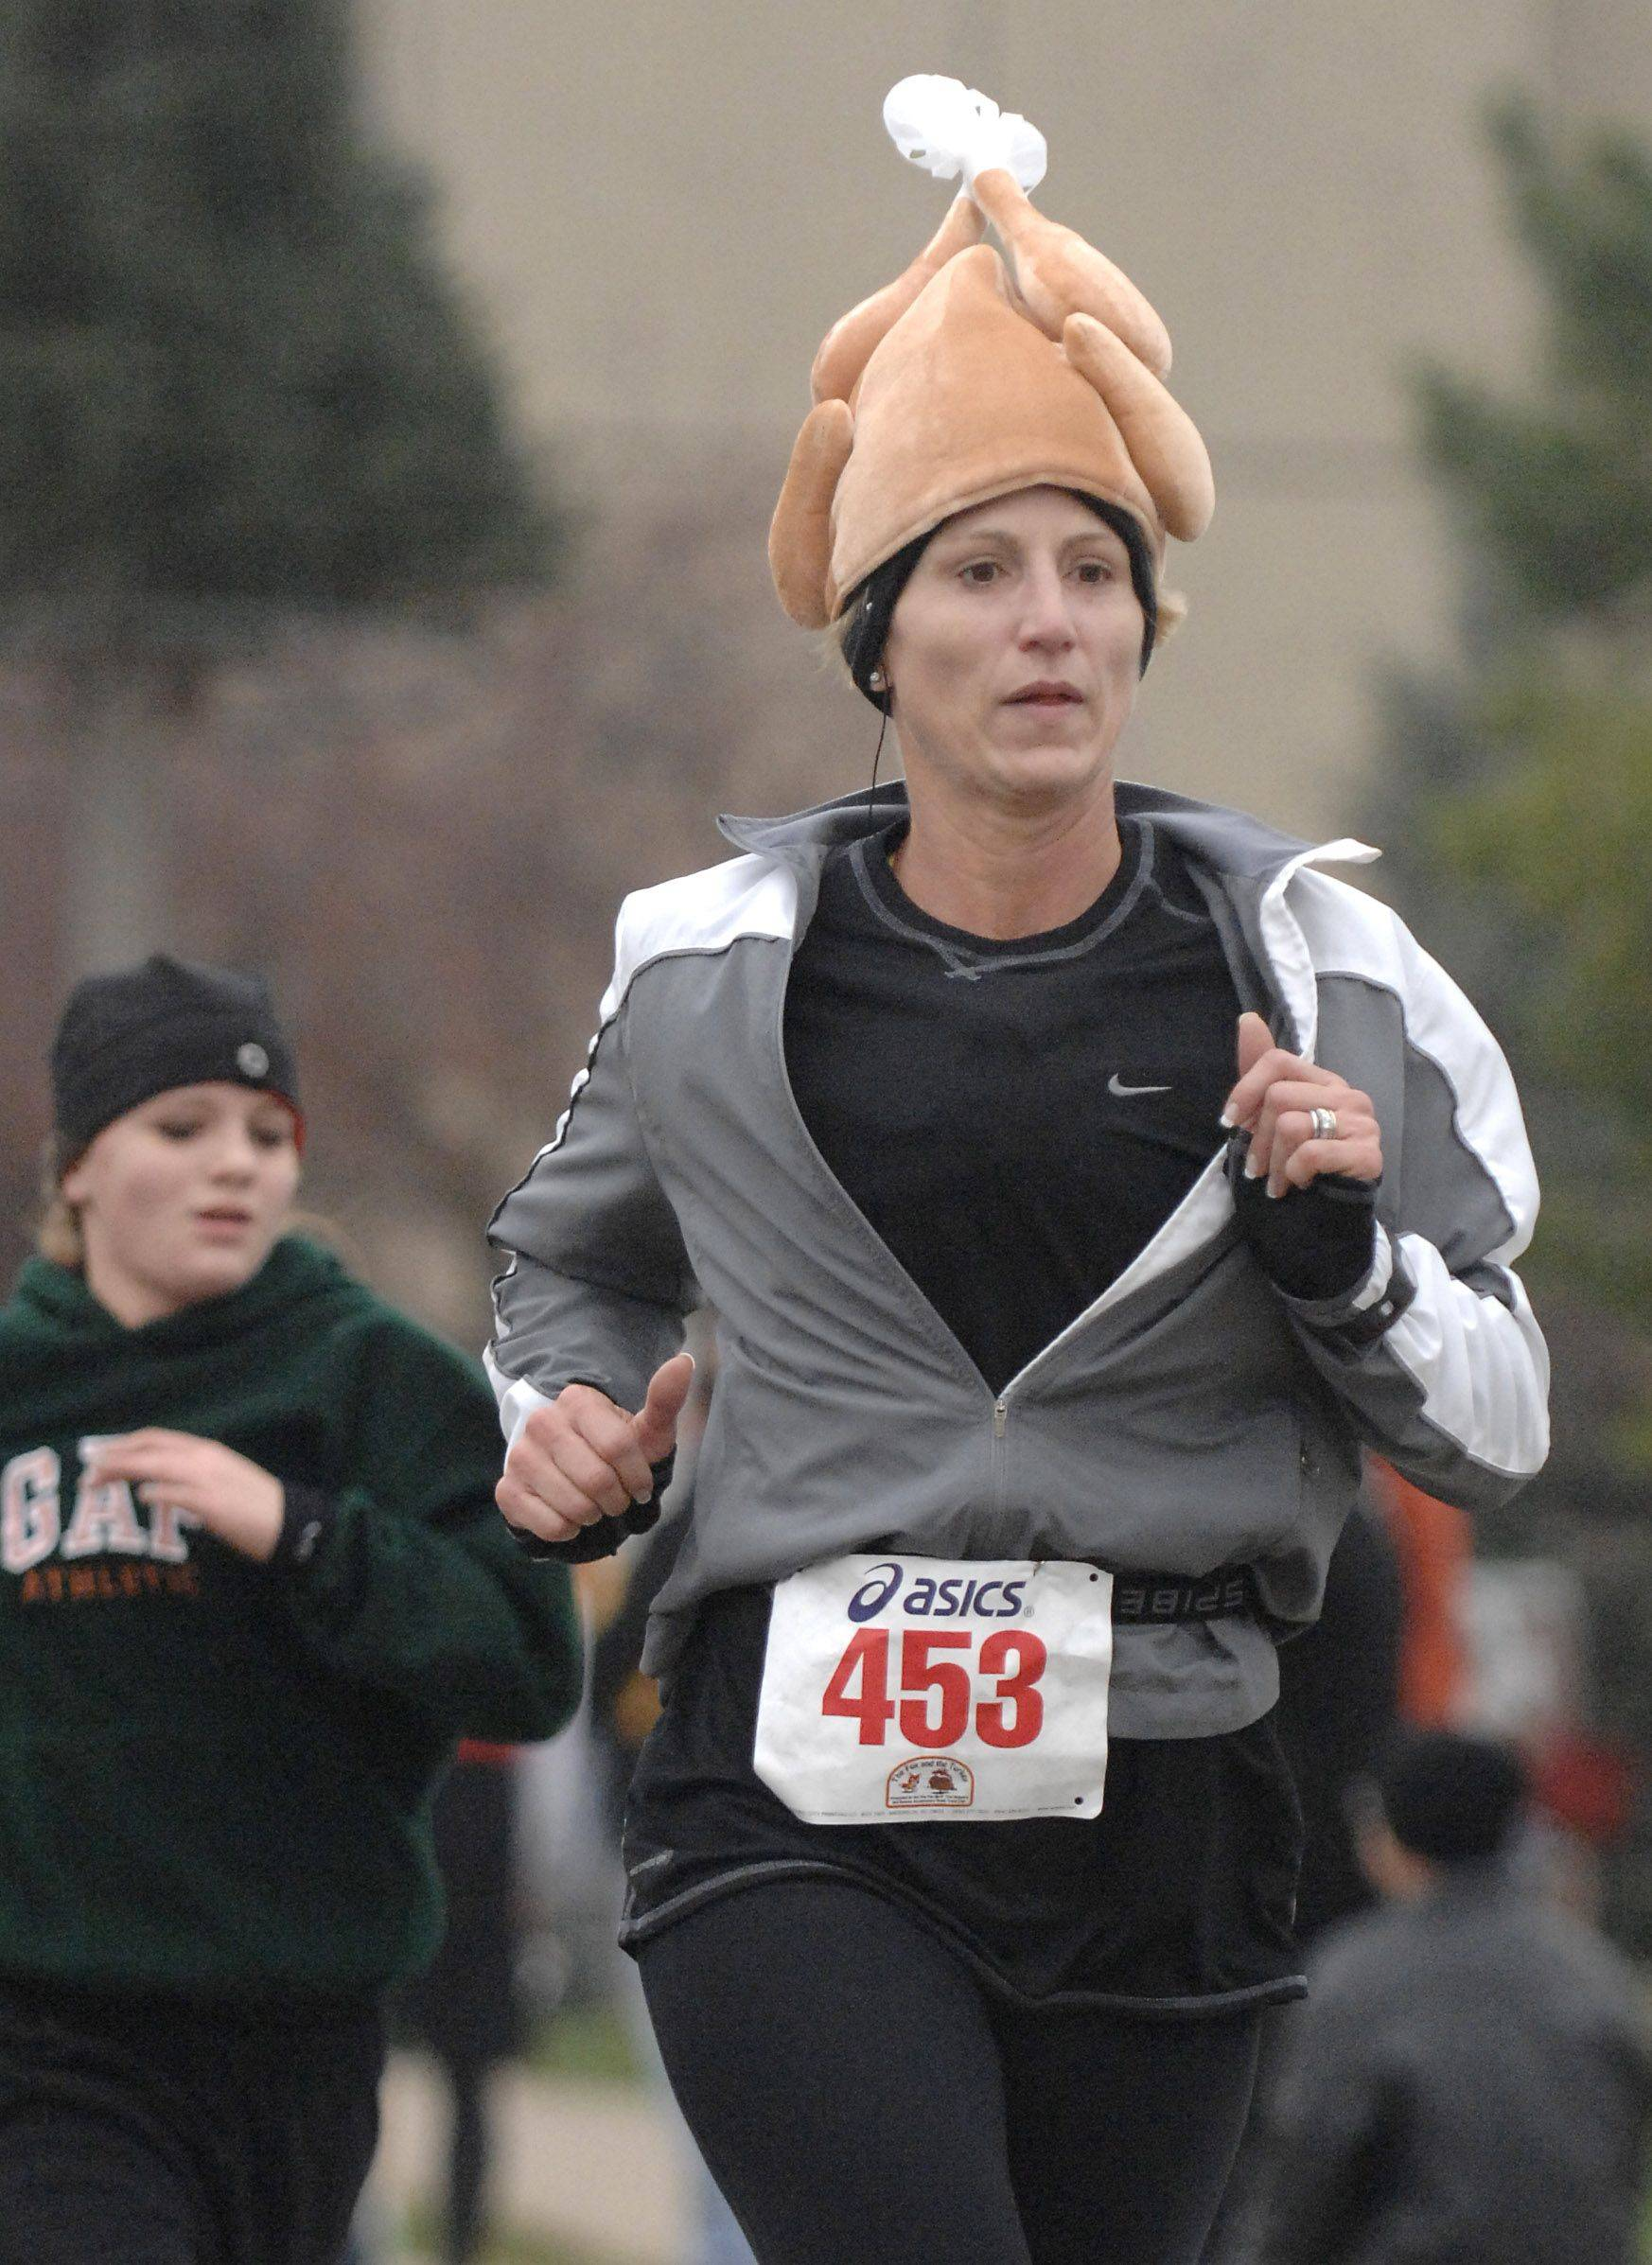 Bethann Bock of South Elgin nears the finish line in the 15th annual Fox and the Turkey four-mile run in Batavia on Thanksgiving morning. Bock ran with her son, Rob, and several other family members visiting from out of town.